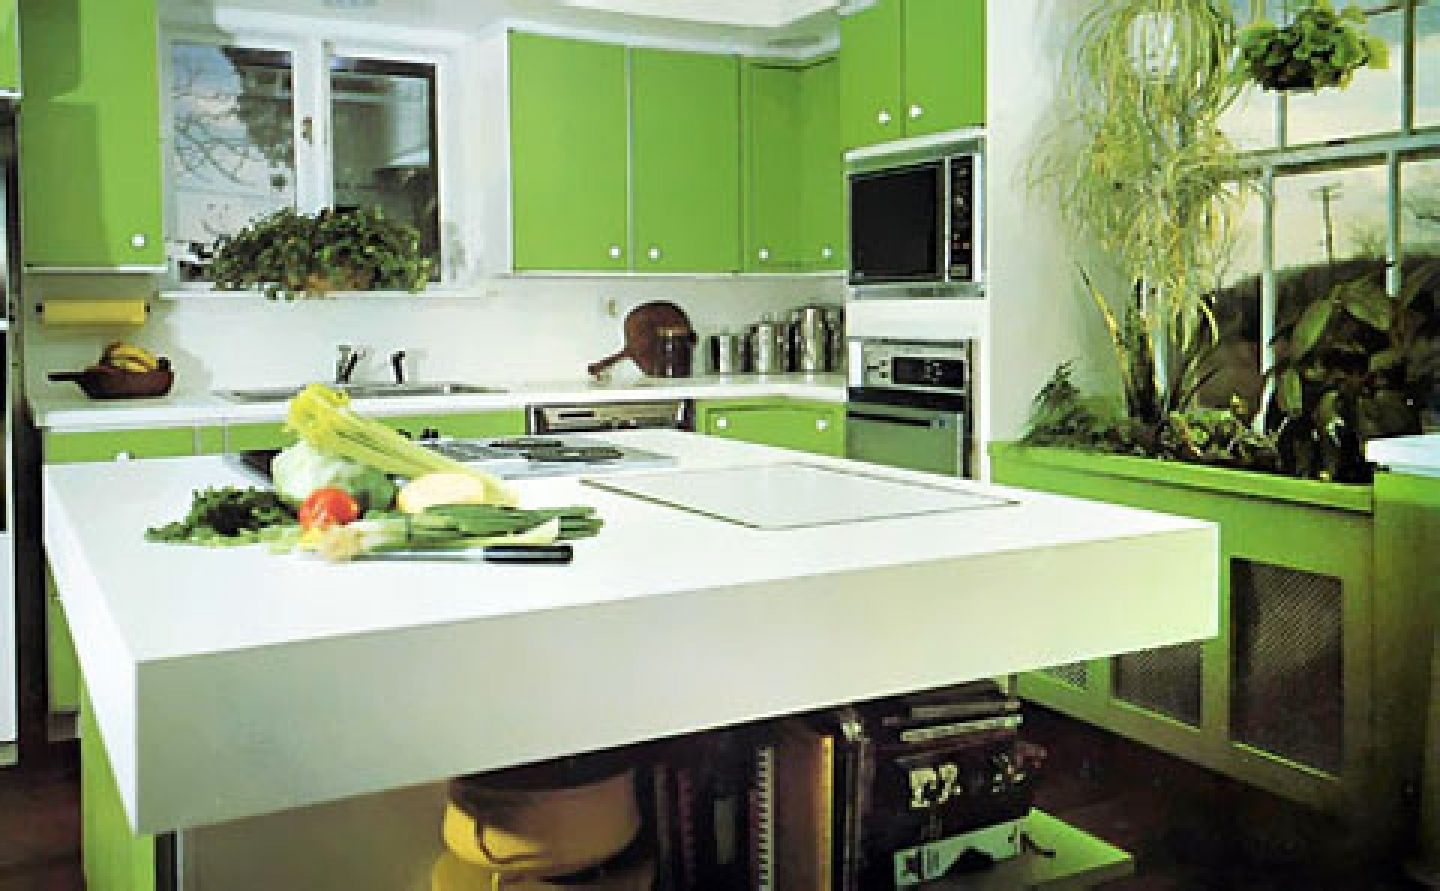 Kitchen 101 creating healthier and greener kitchen for Cuisine deco